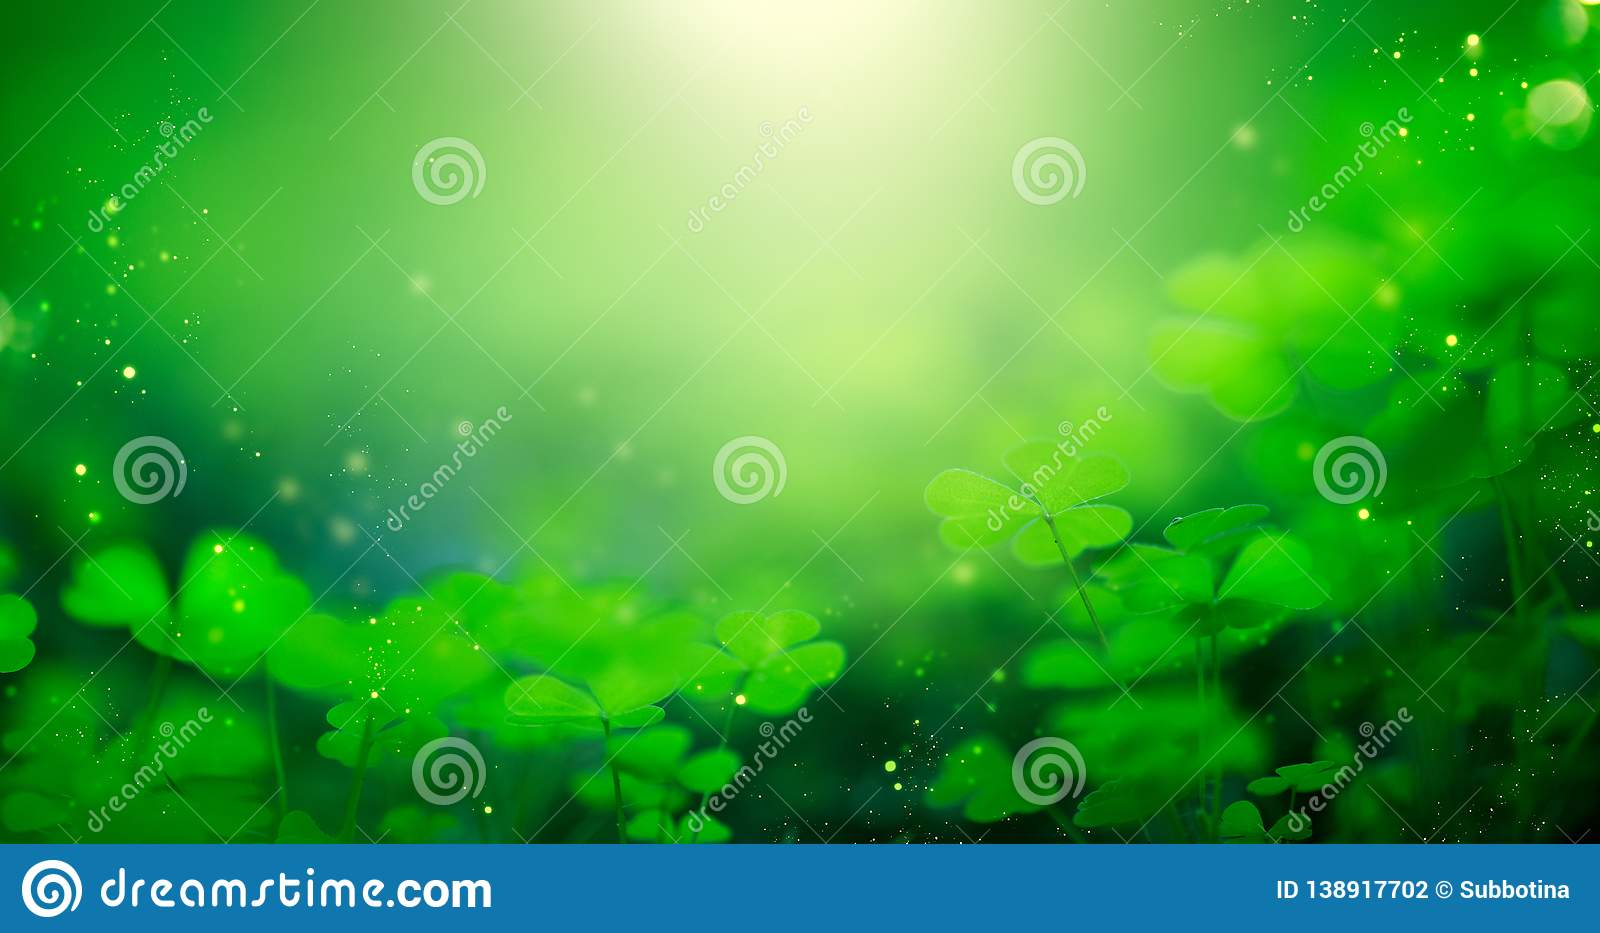 St. Patrick`s Day green blurred background with shamrock leaves. Patrick Day. Abstract border art design. Magic clover